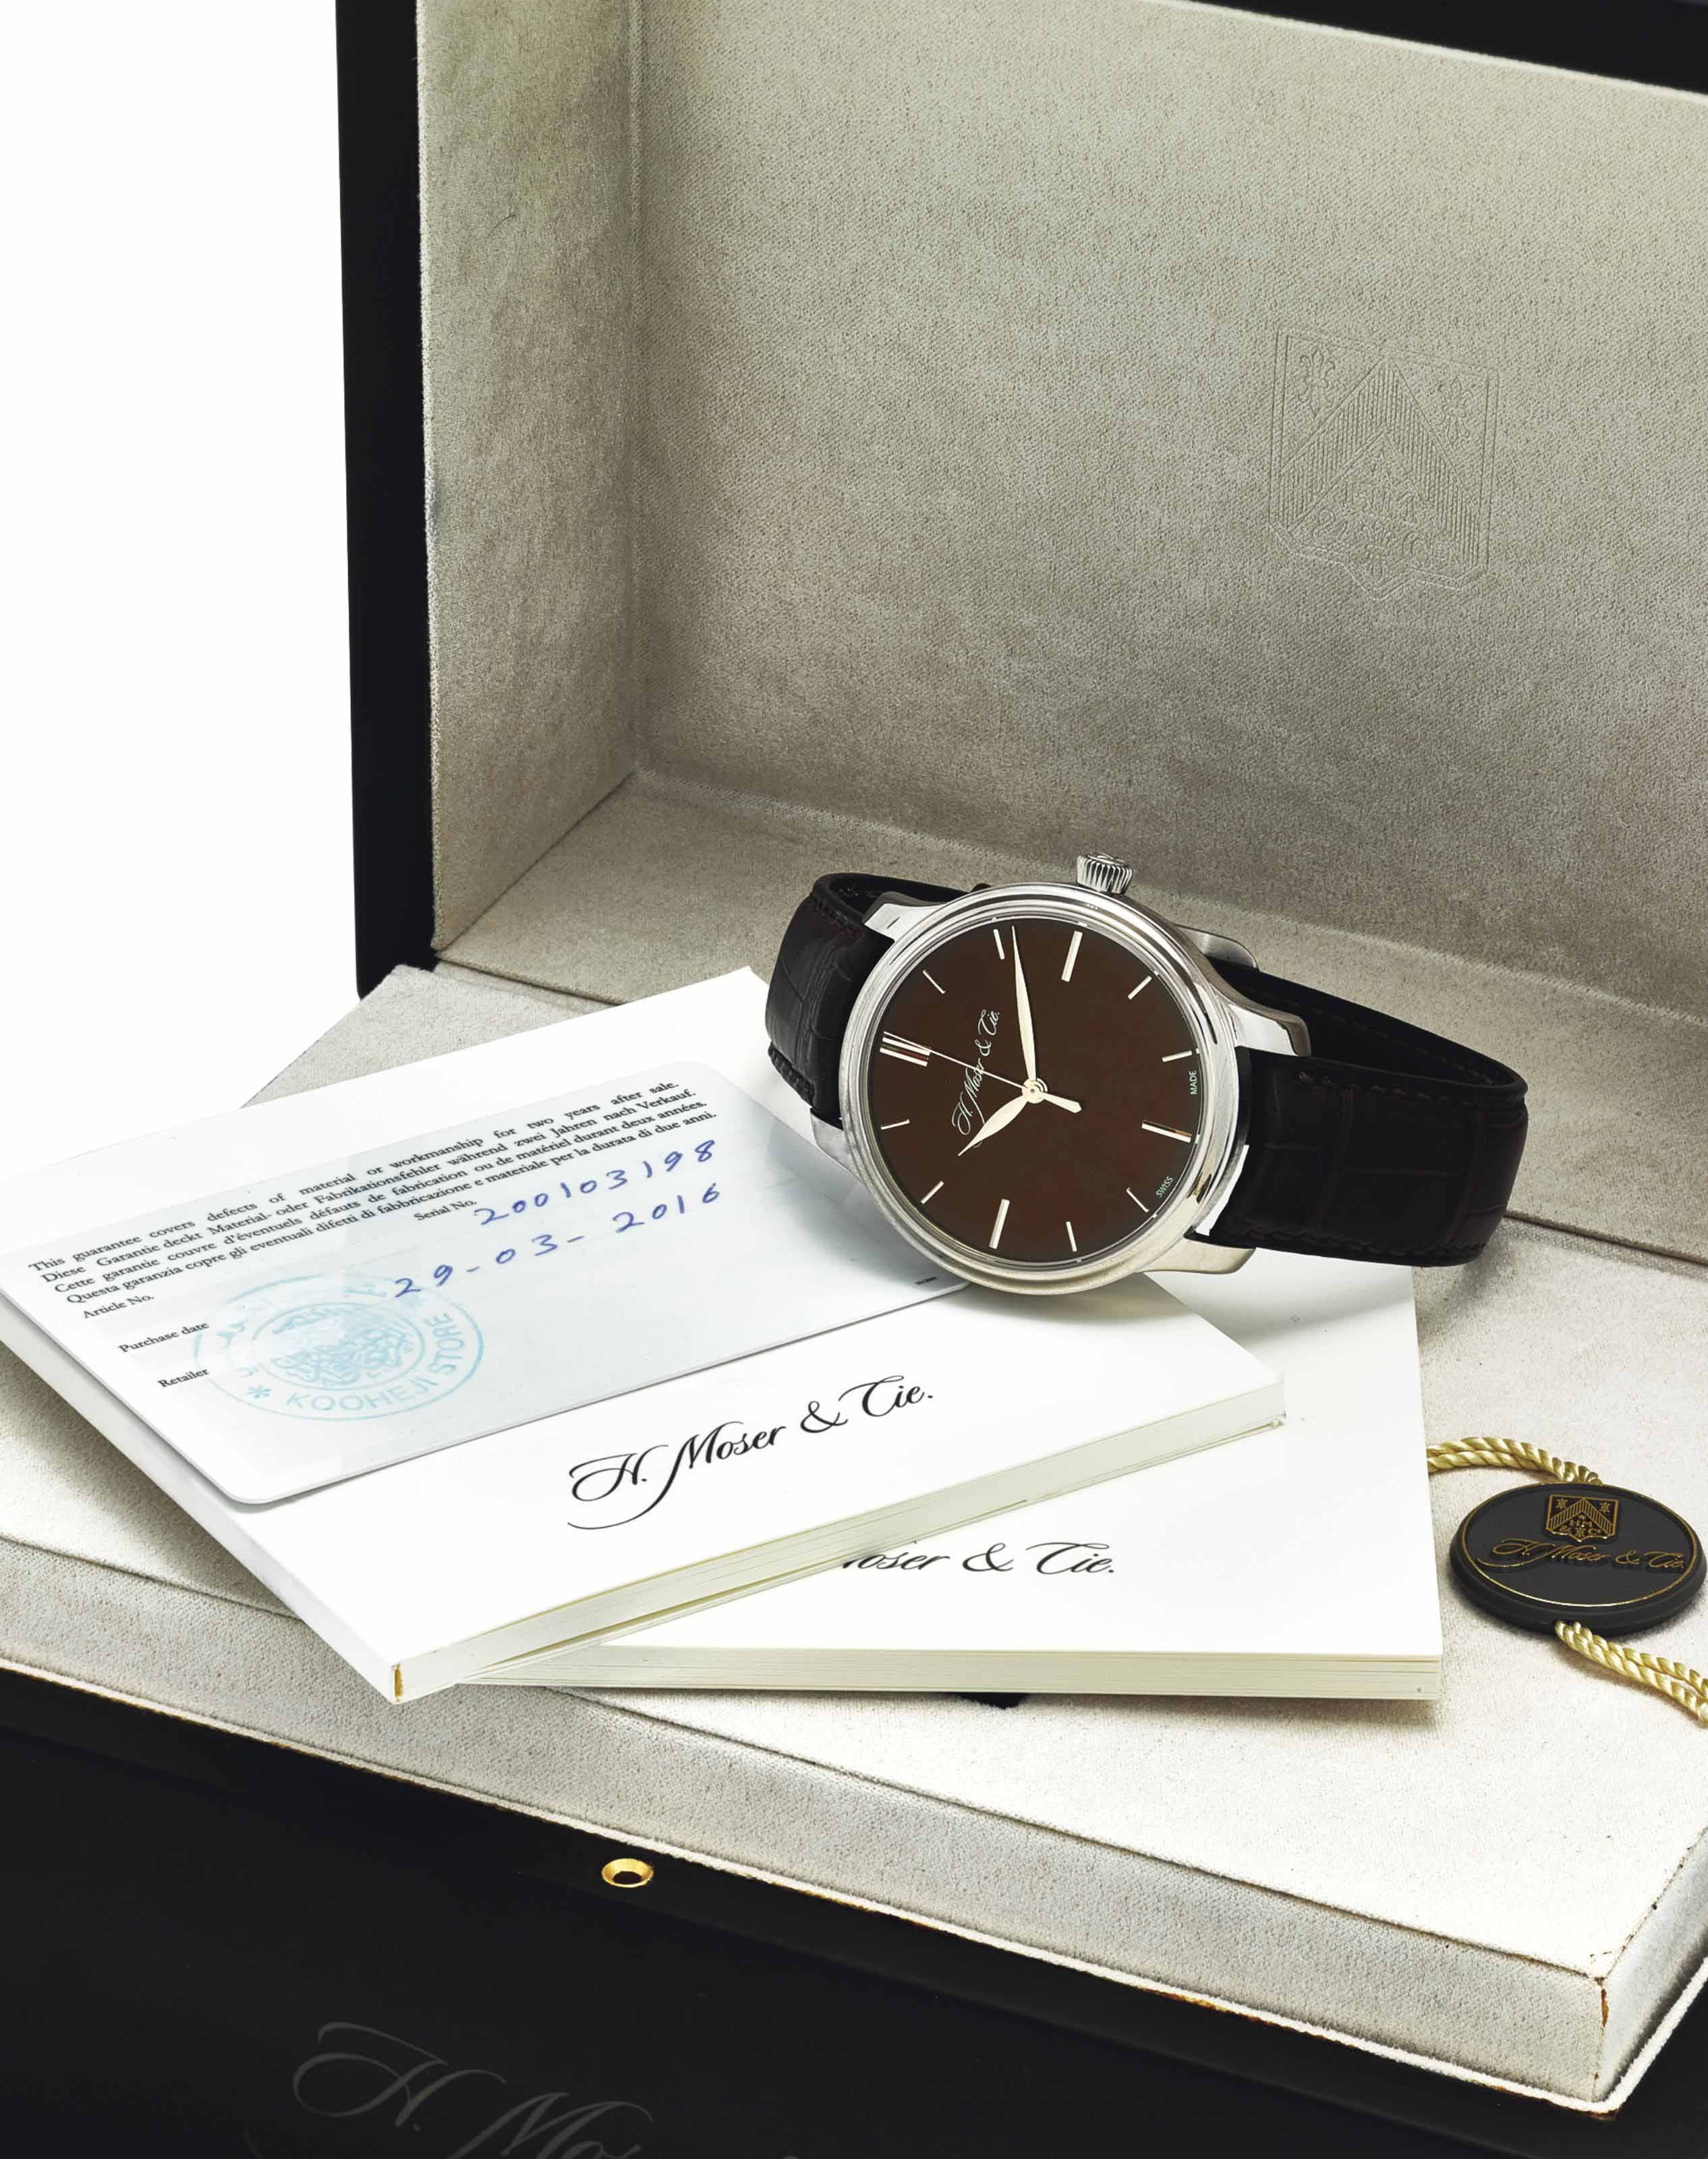 H. MOSER & CIE. A FINE 18K WHITE GOLD WRISTWATCH WITH SWEEP CENTRE SECONDS, 7 DAY POWER RESERVE, ORIGINAL CERTIFICATE AND BOX